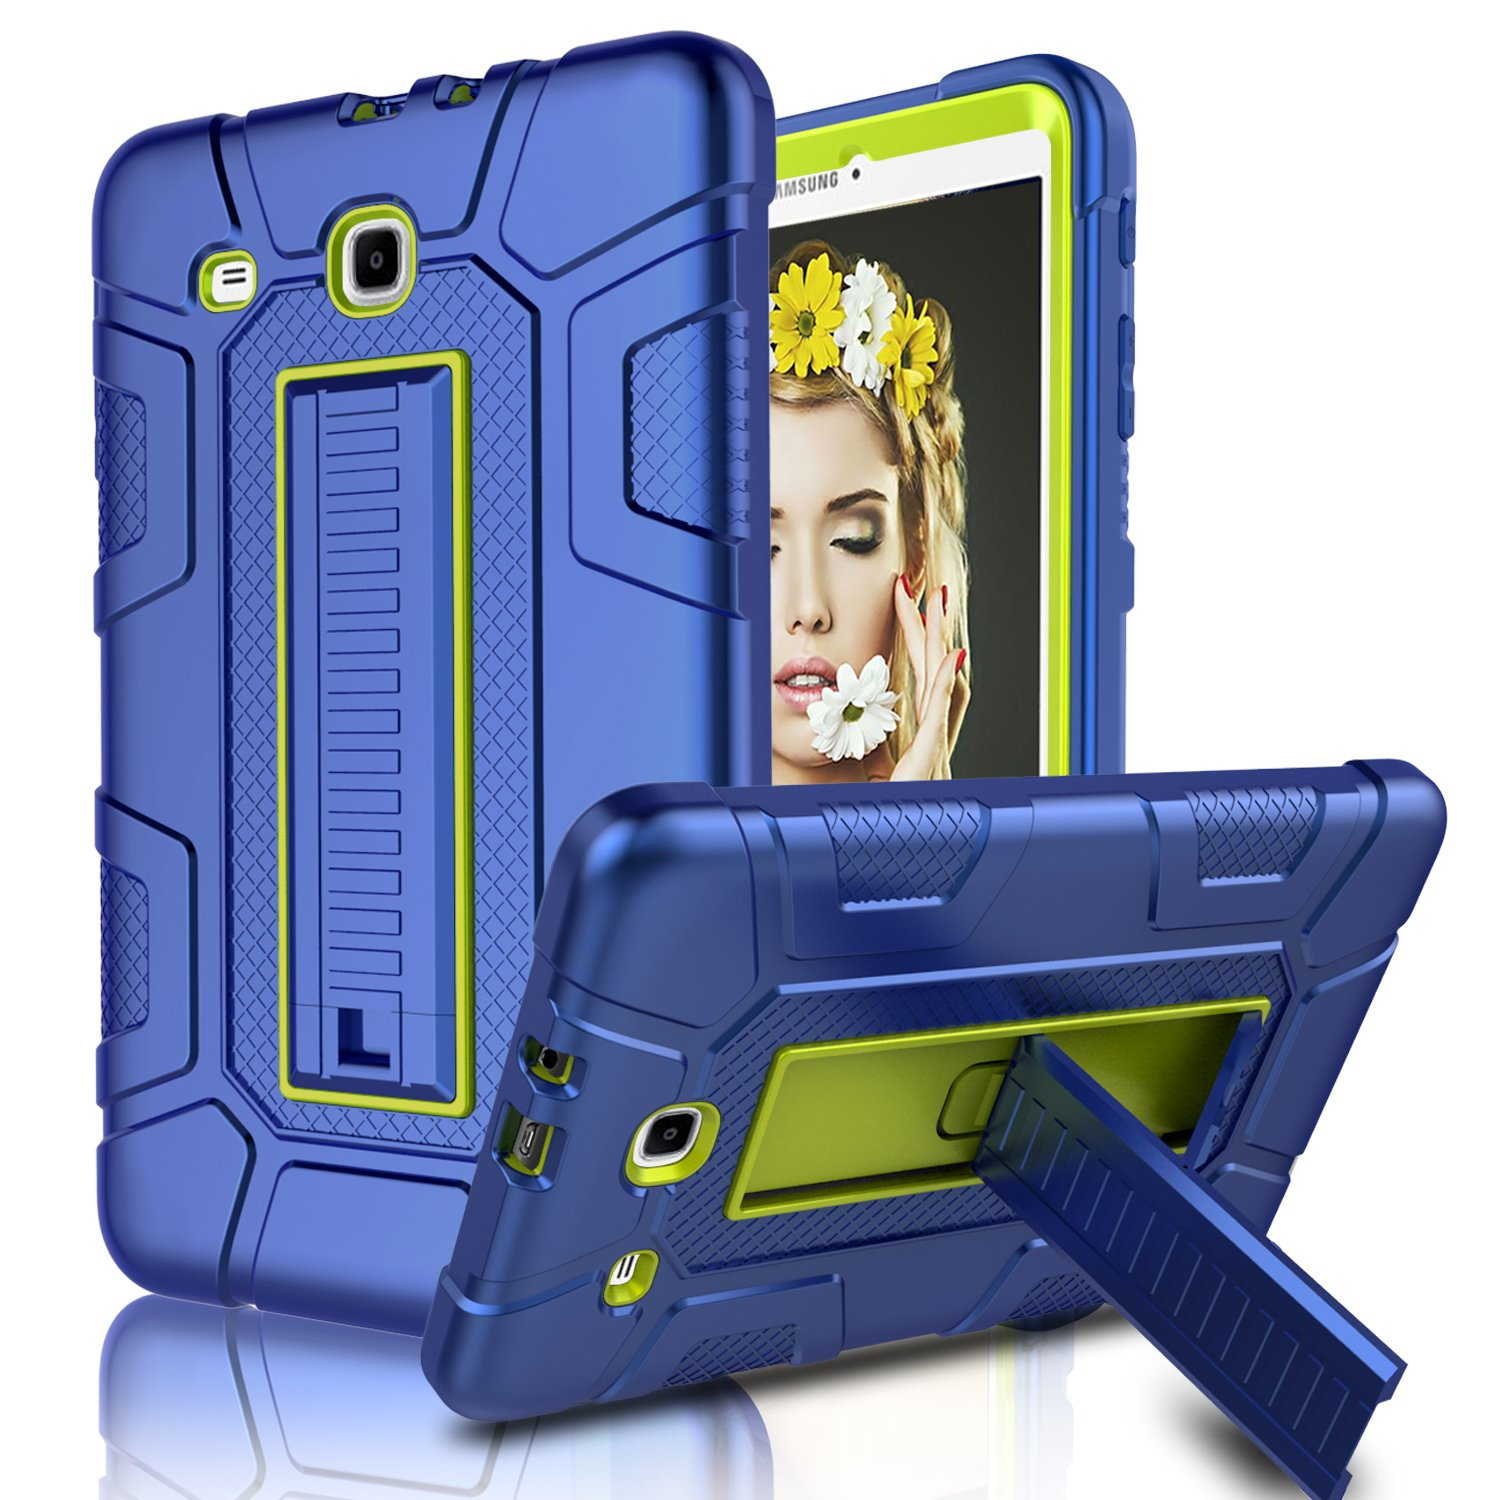 Galaxy Tab E 9.6 Case, Elegant Choise Case with Kickstand Three Layer Heavy Duty Shockproof Defender Rugged Protective Case Cover for Samsung Galaxy Tab E 9.6 inch/SM-T560/T561/T567 (Yellow/Blue) EC™